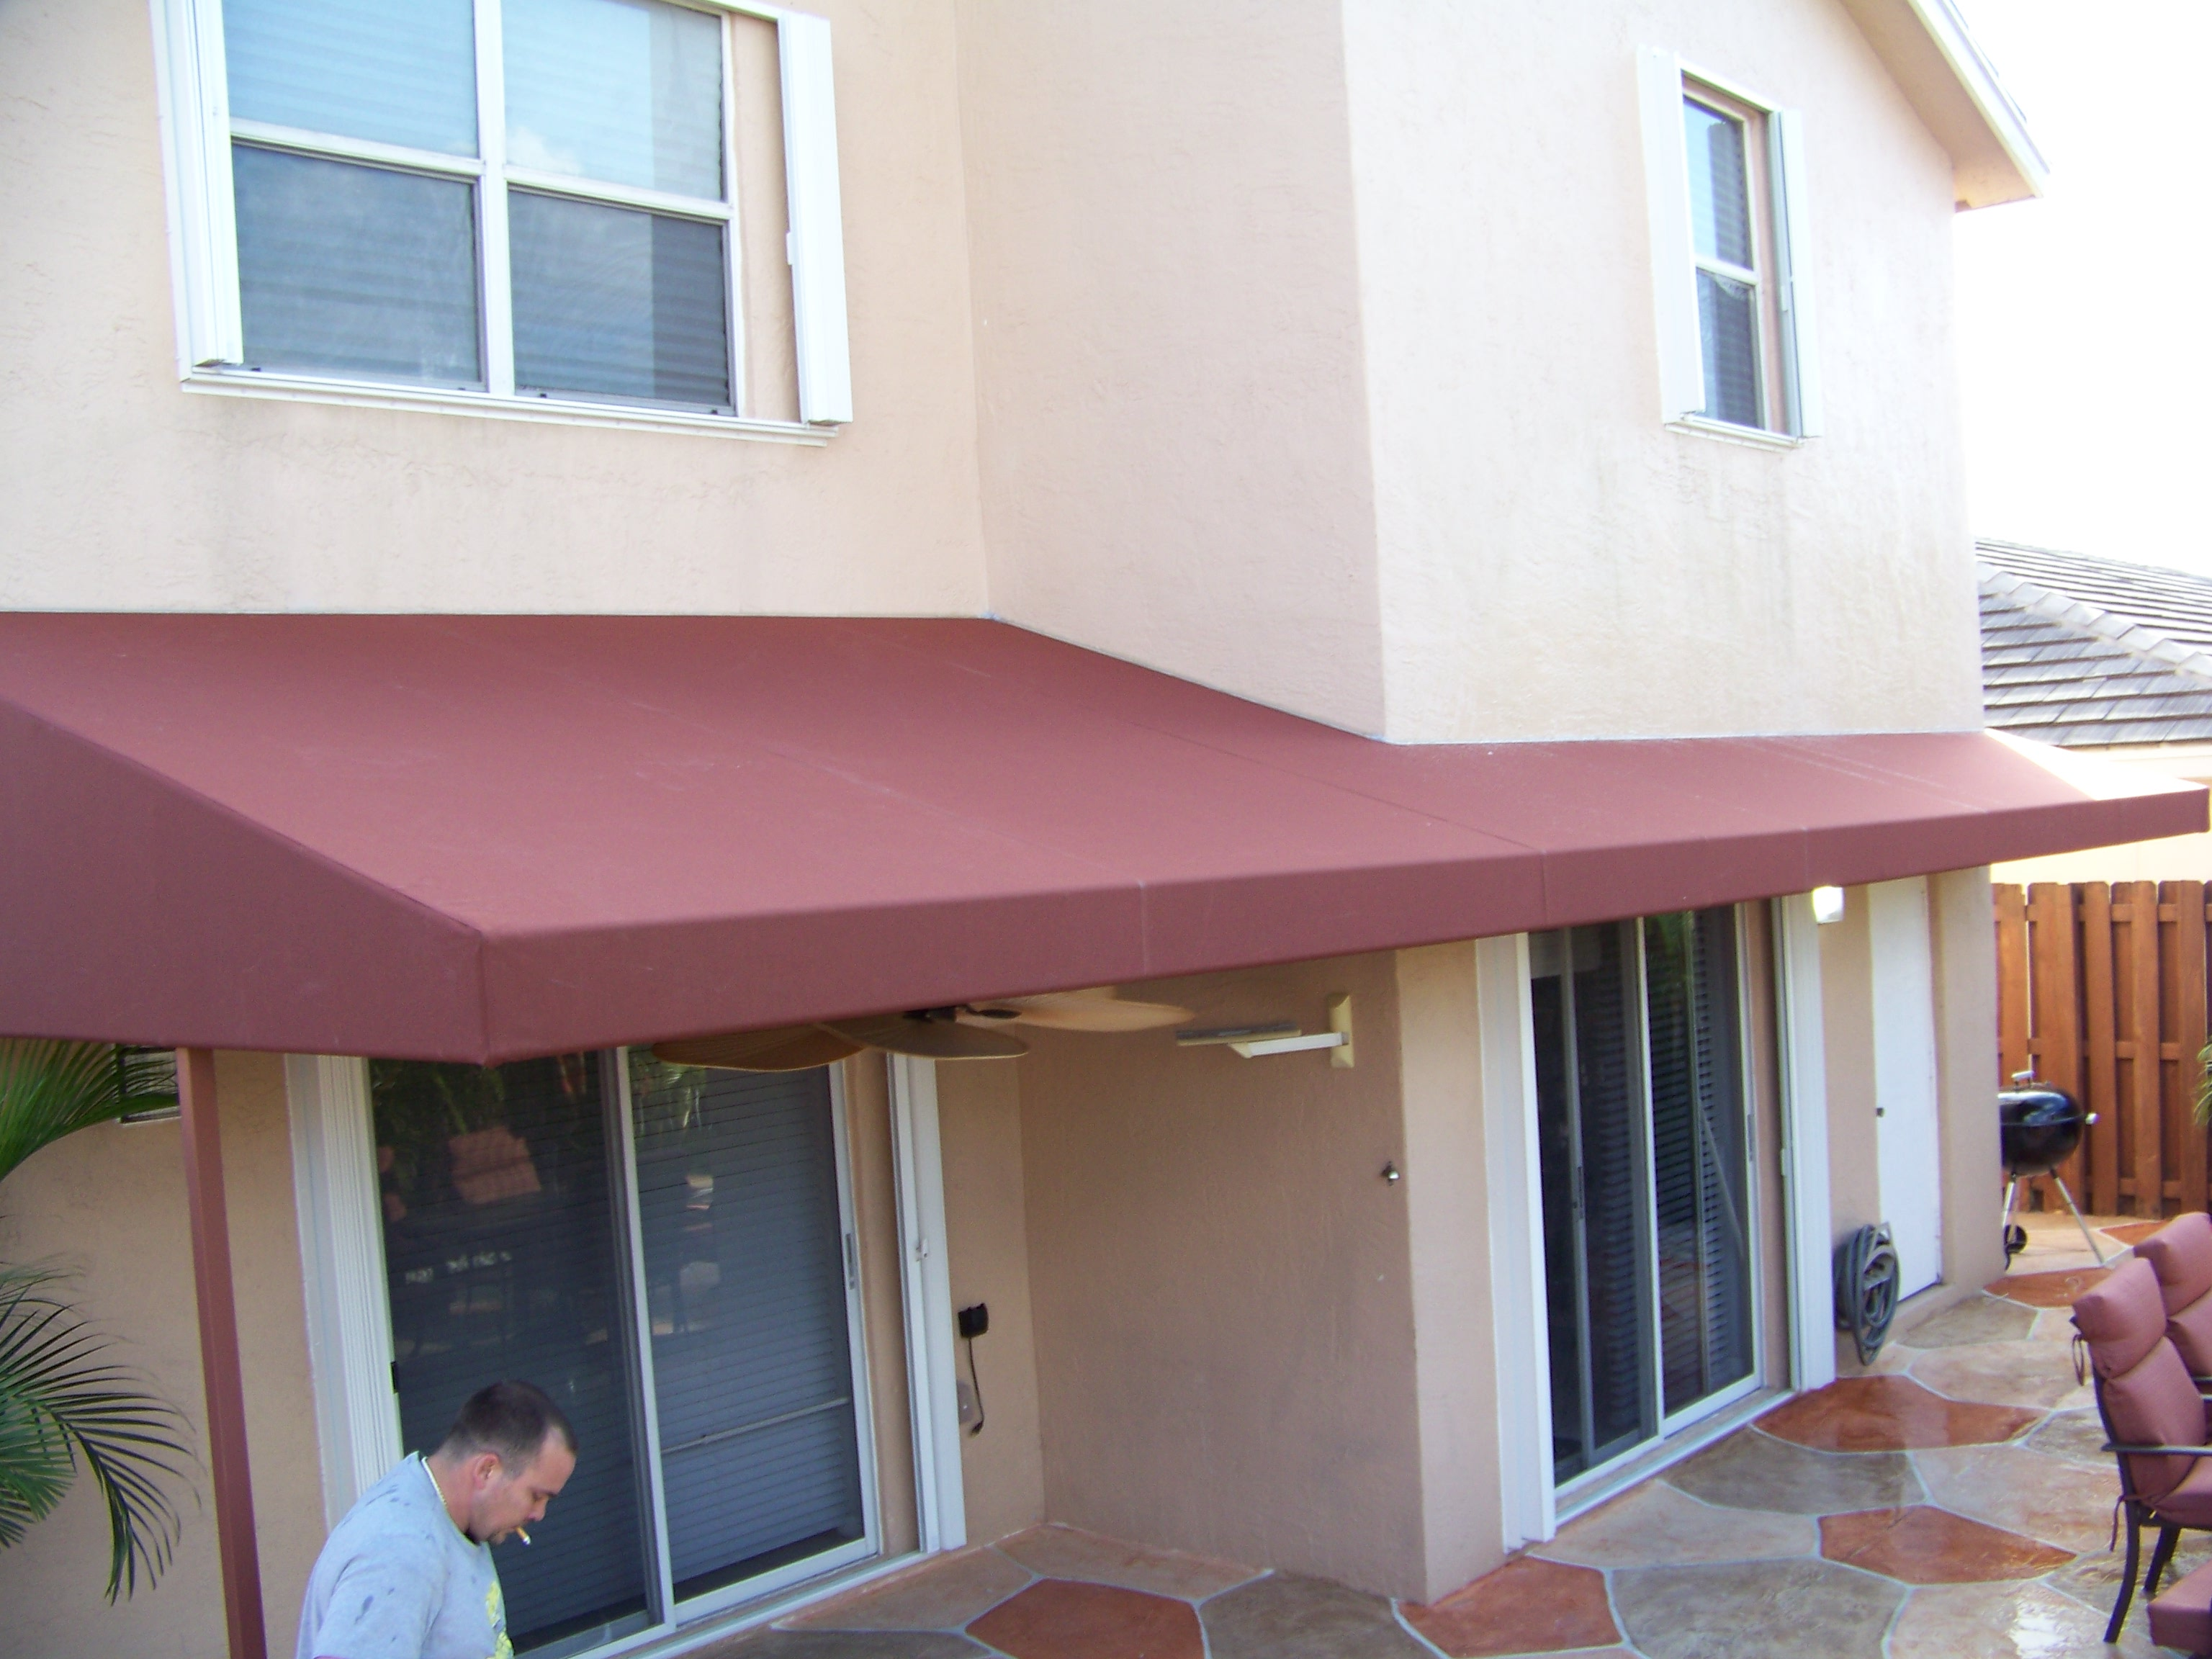 Welcome To A To Z Awnings Company, Inc. One Of The Most Reliable  Manufacturers Of Awnings In South Florida, Your One Stop Shop For Your  Custom Canvas Needs.